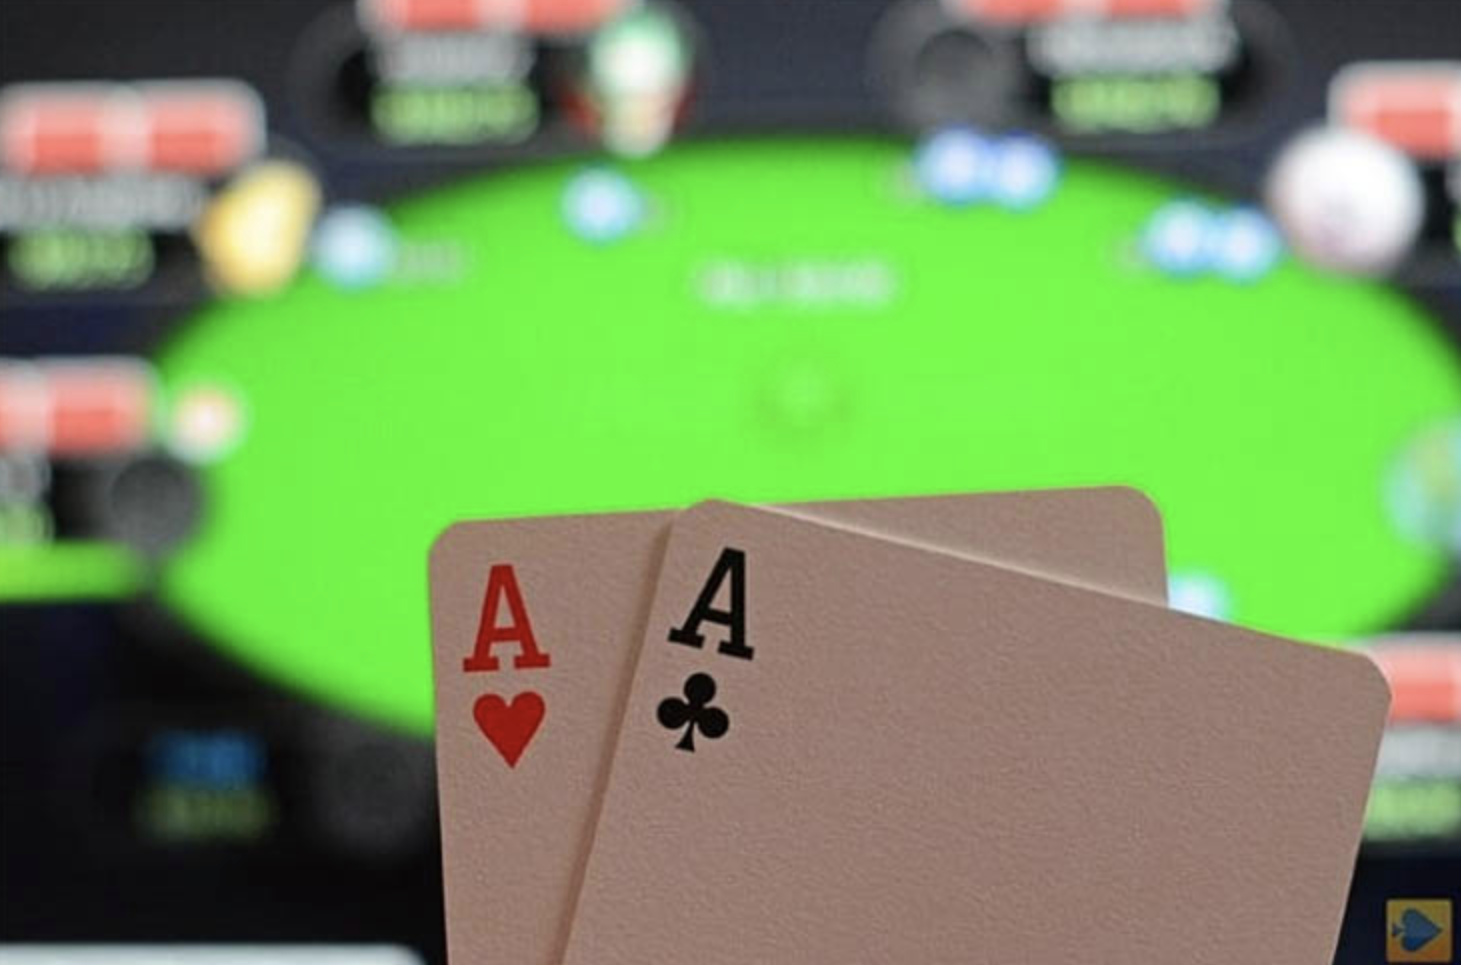 online gambling with the Poker cards